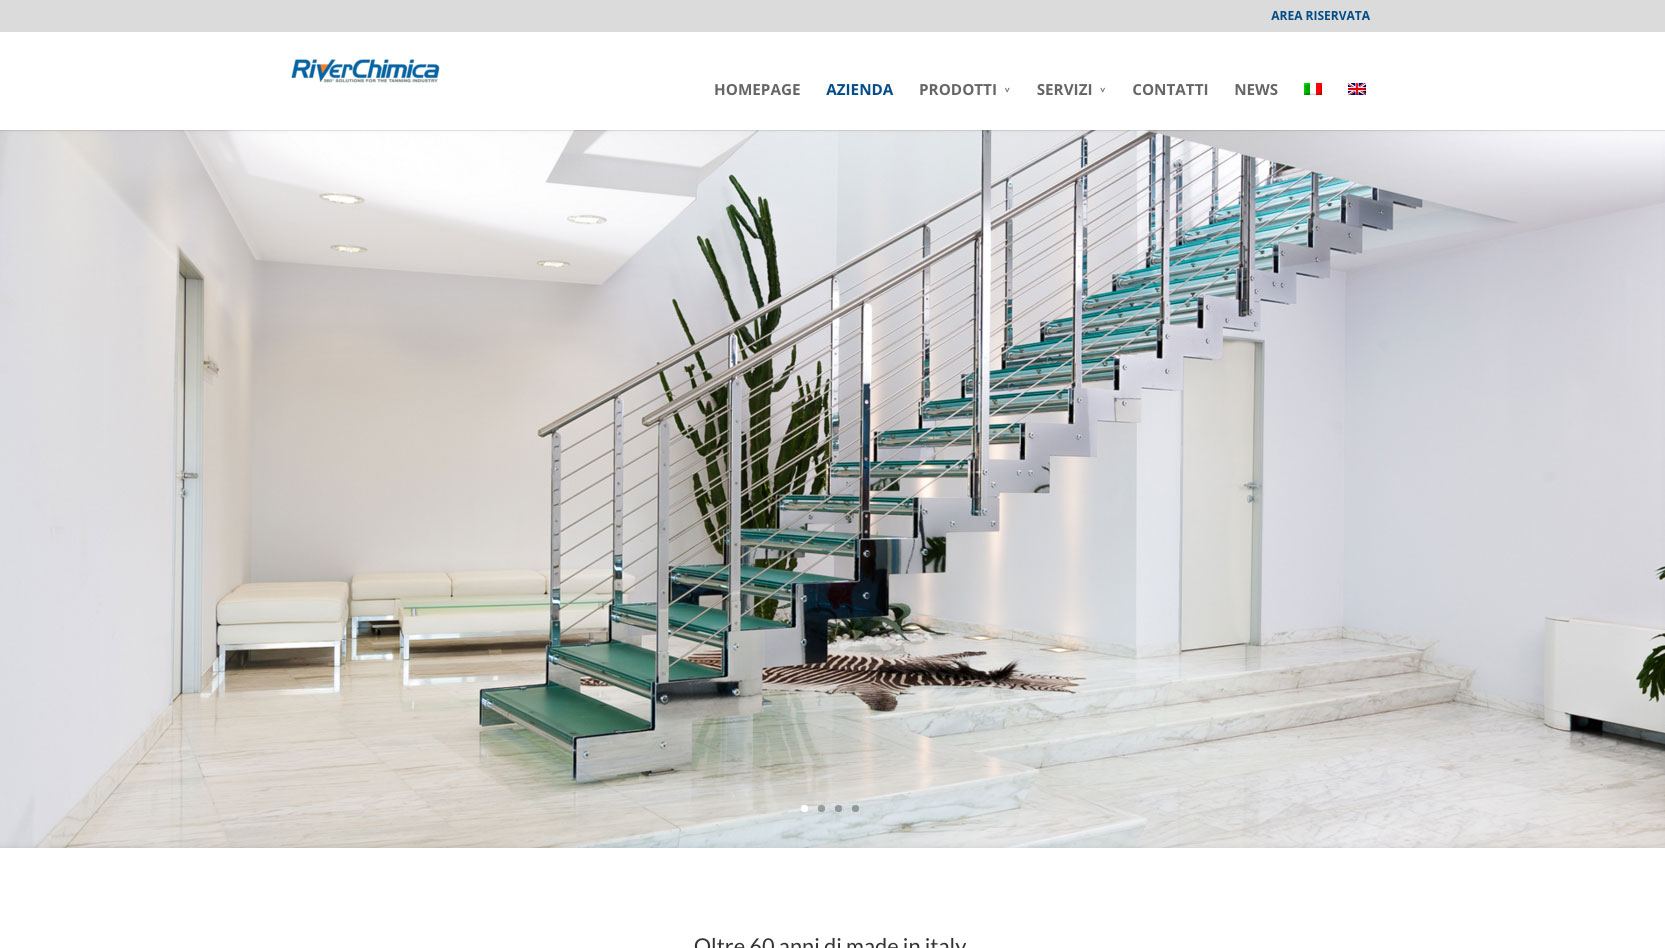 River Chimica Industriale spa - homepage